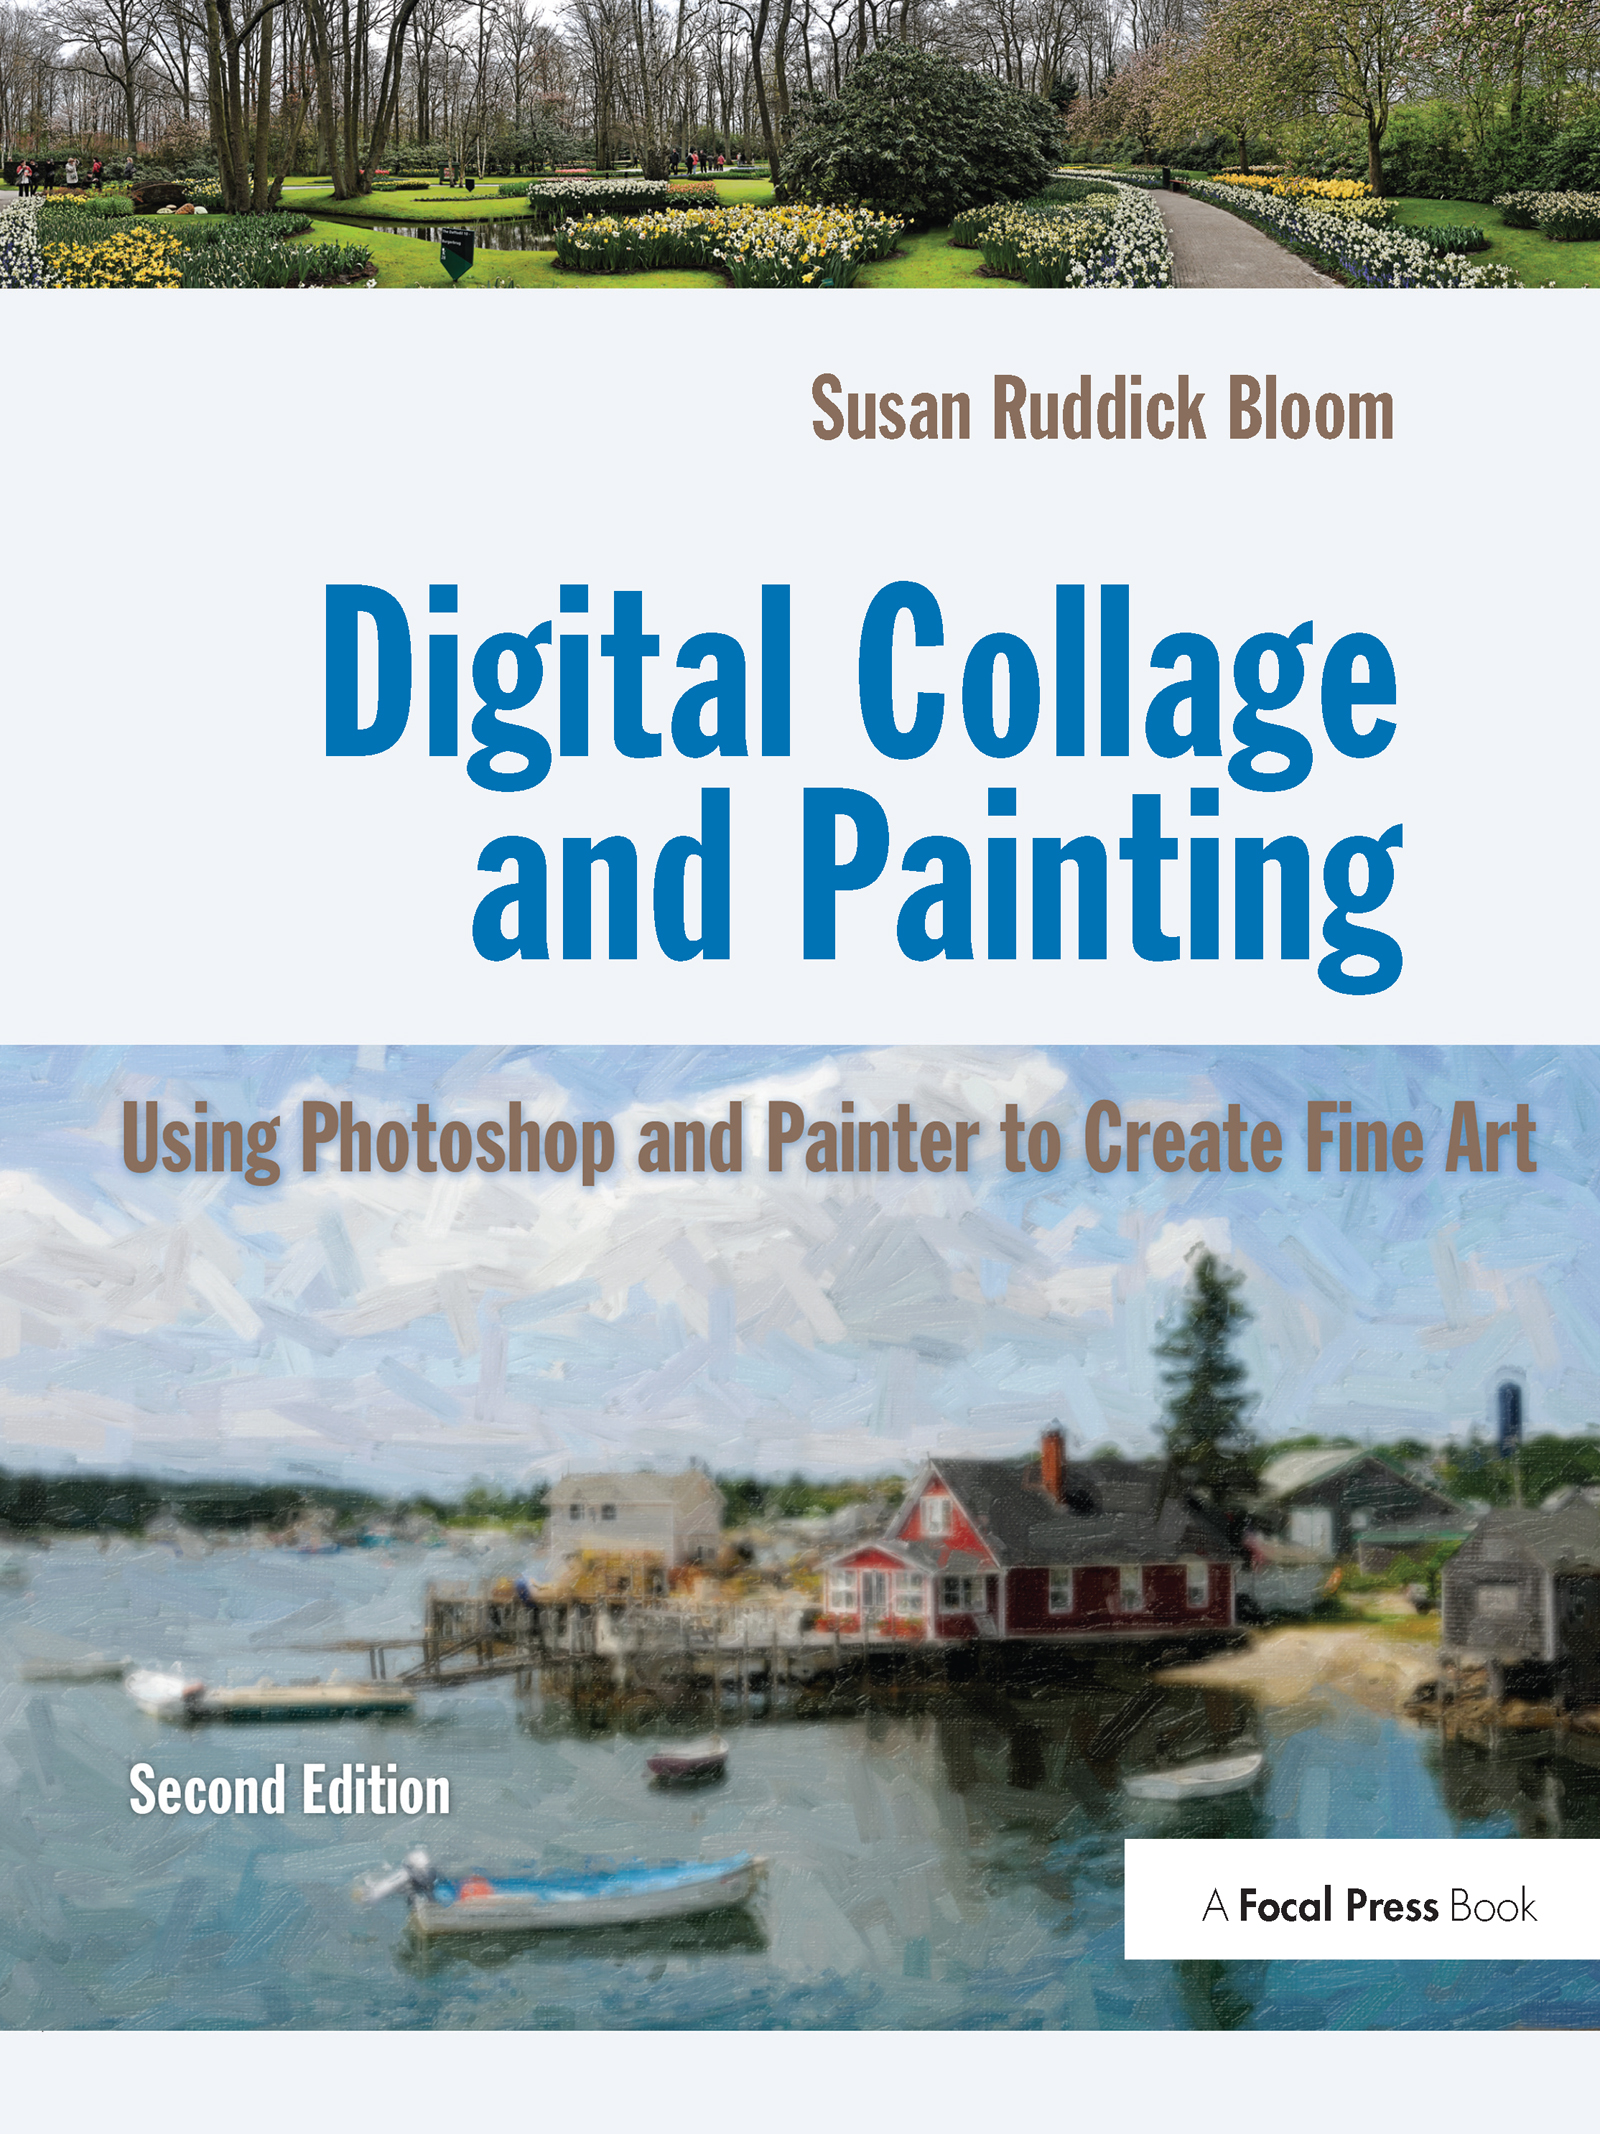 Digital Collage and Painting: Using Photoshop and Painter to Create Fine Art book cover